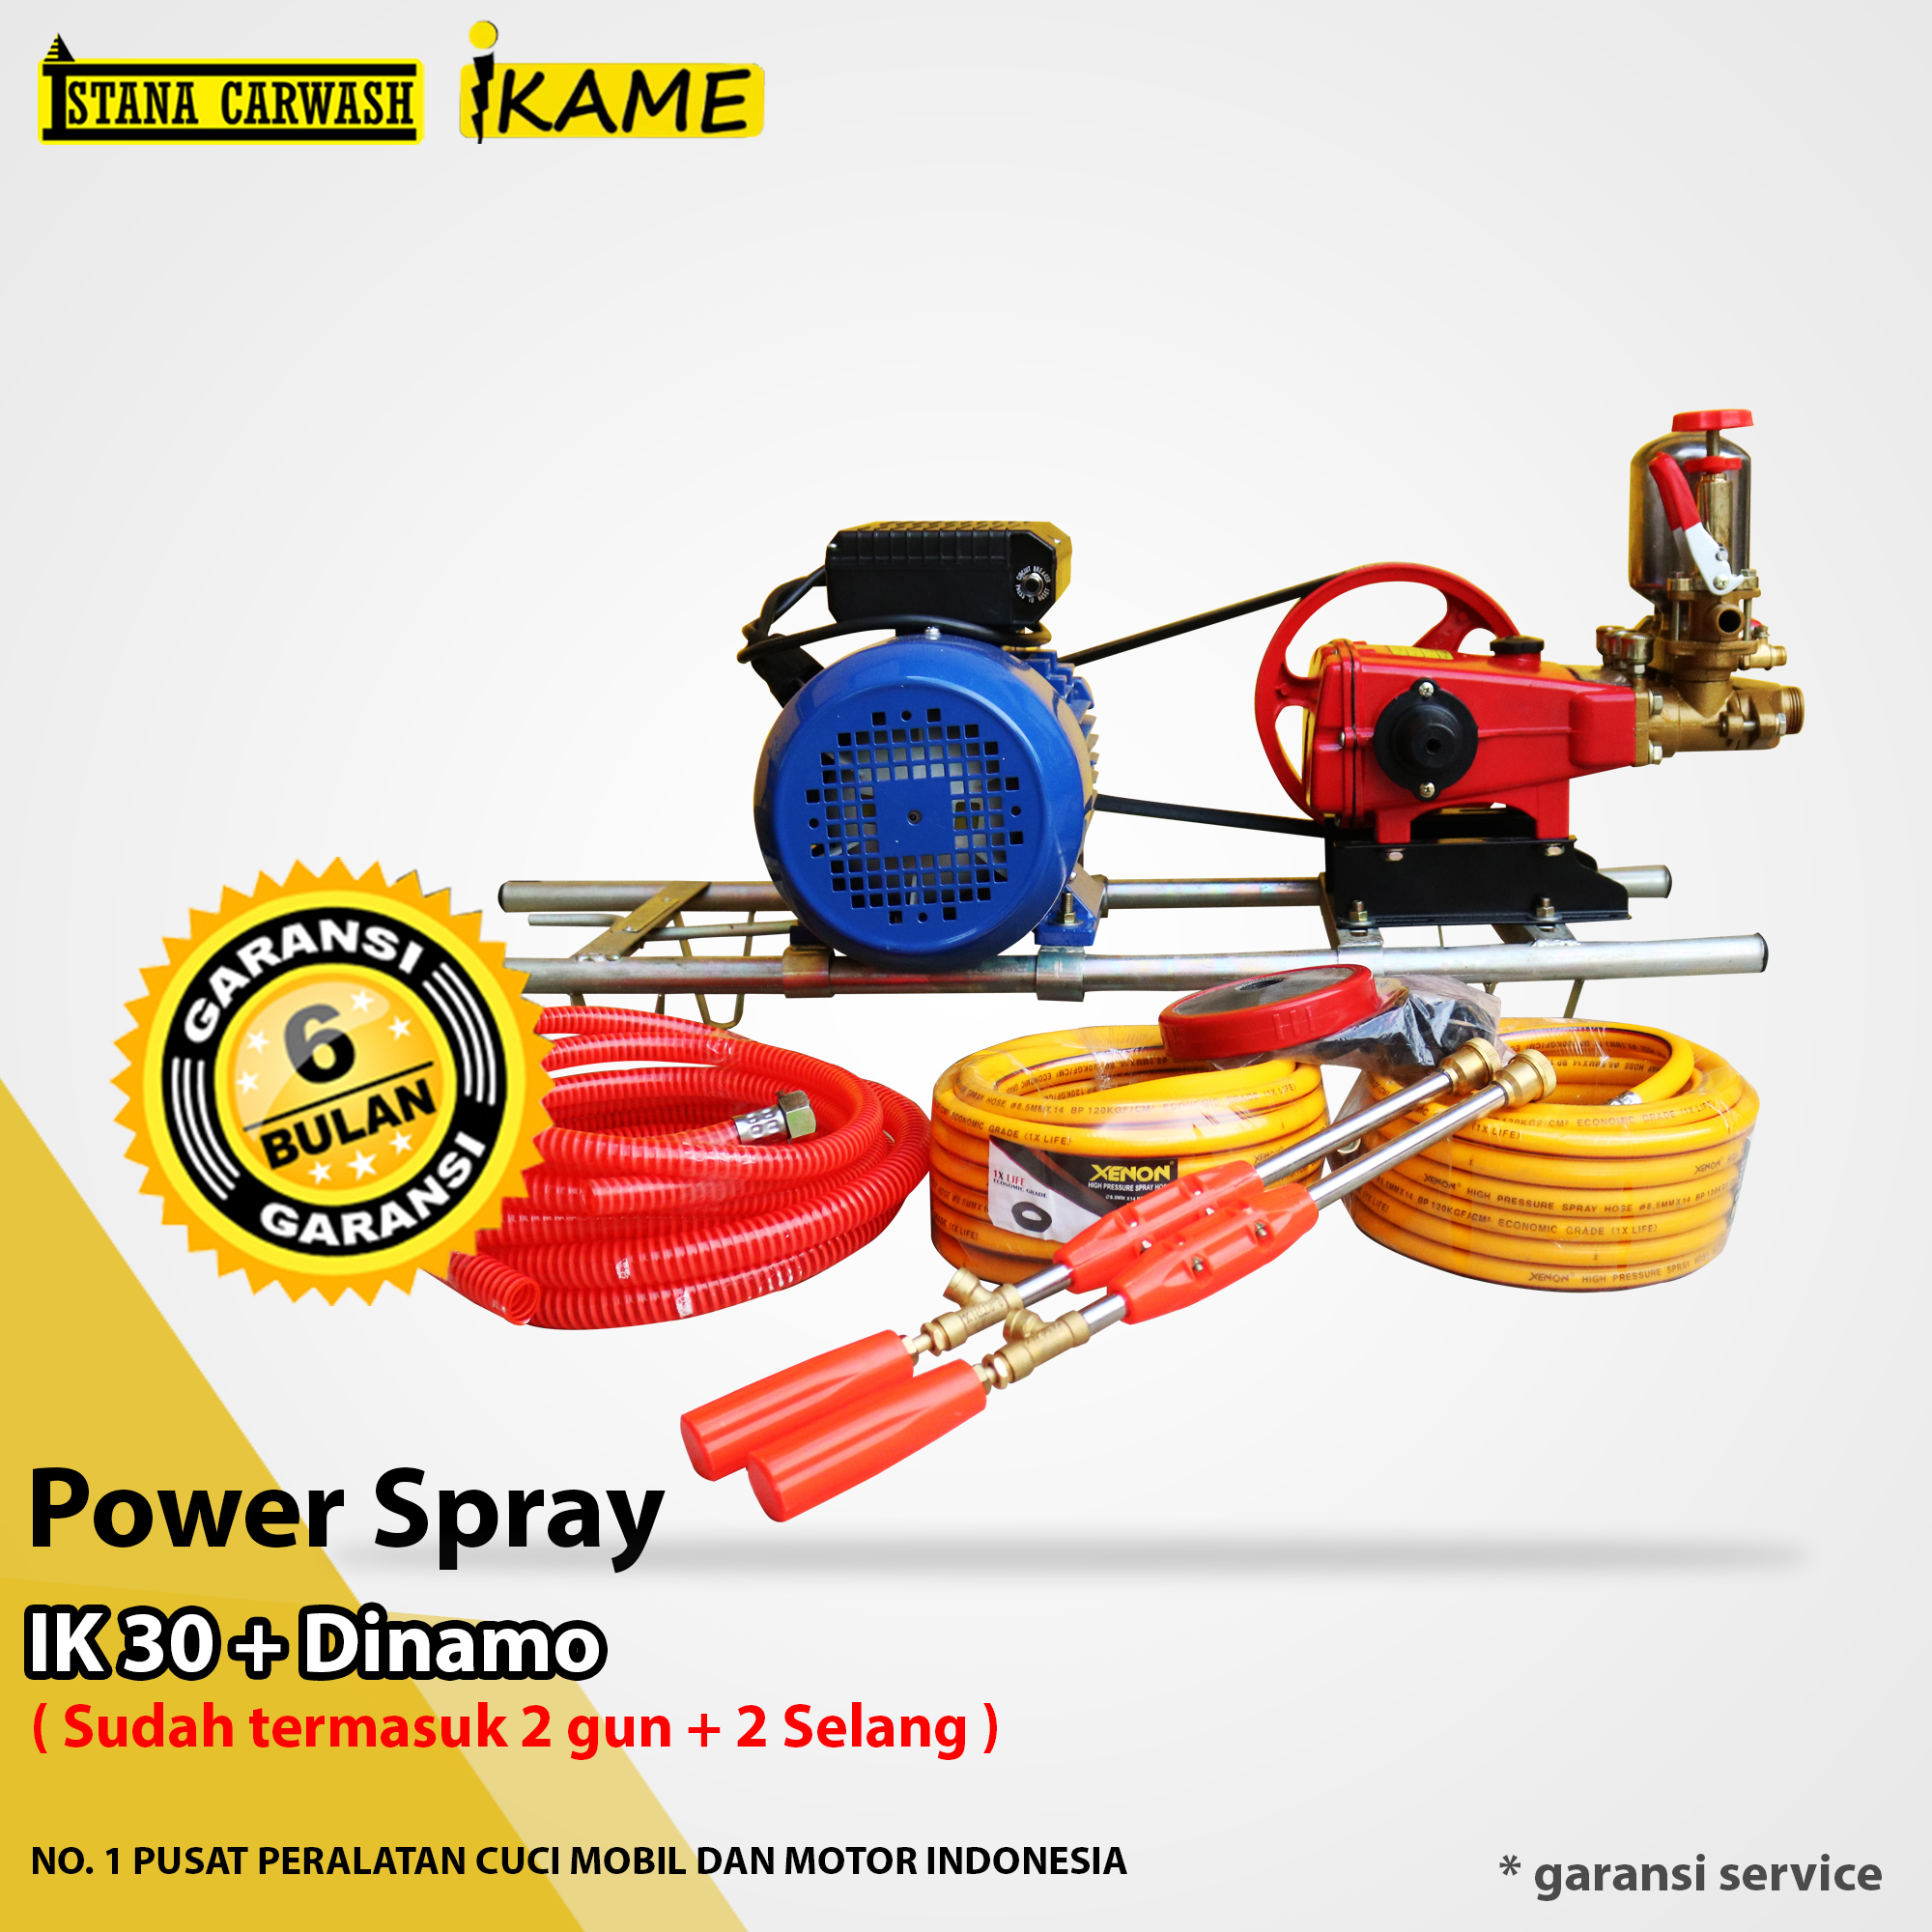 Power Spray Ikame IK 30 + Dinamo